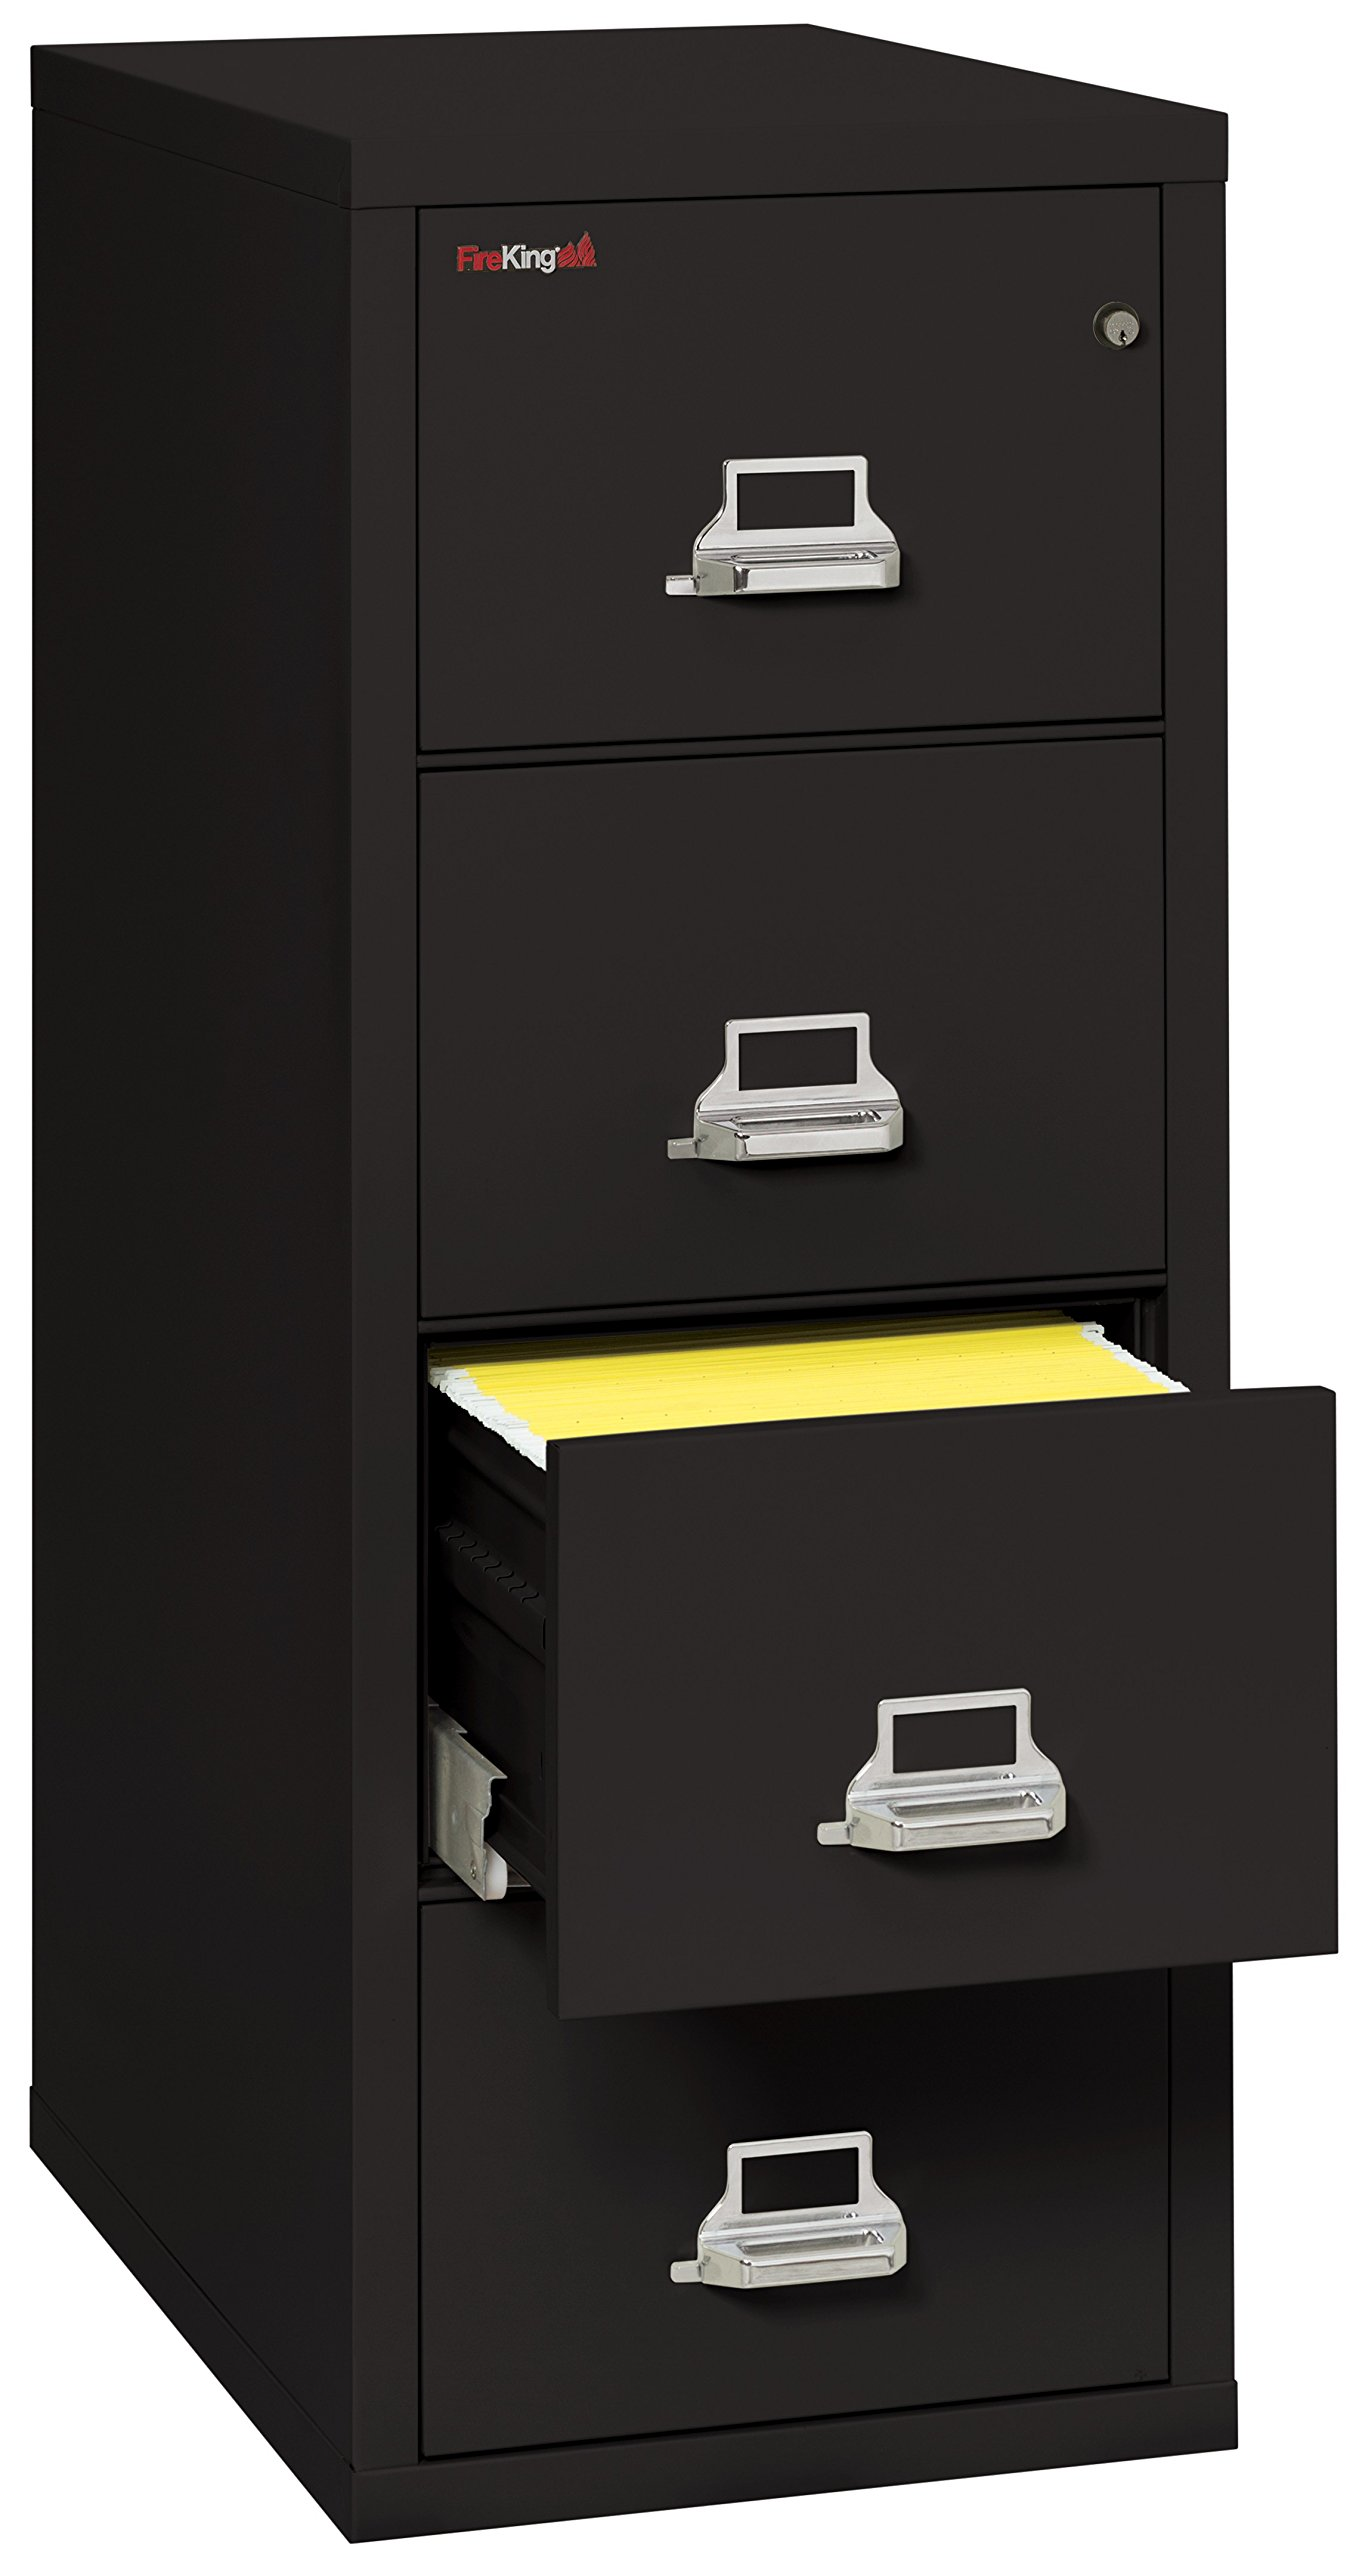 Black 1 hour Fire Impact rated Vertical cabinet 4 Drawer Legal 31 1/2 depth Made in USA by Fire King Security Group (Image #1)